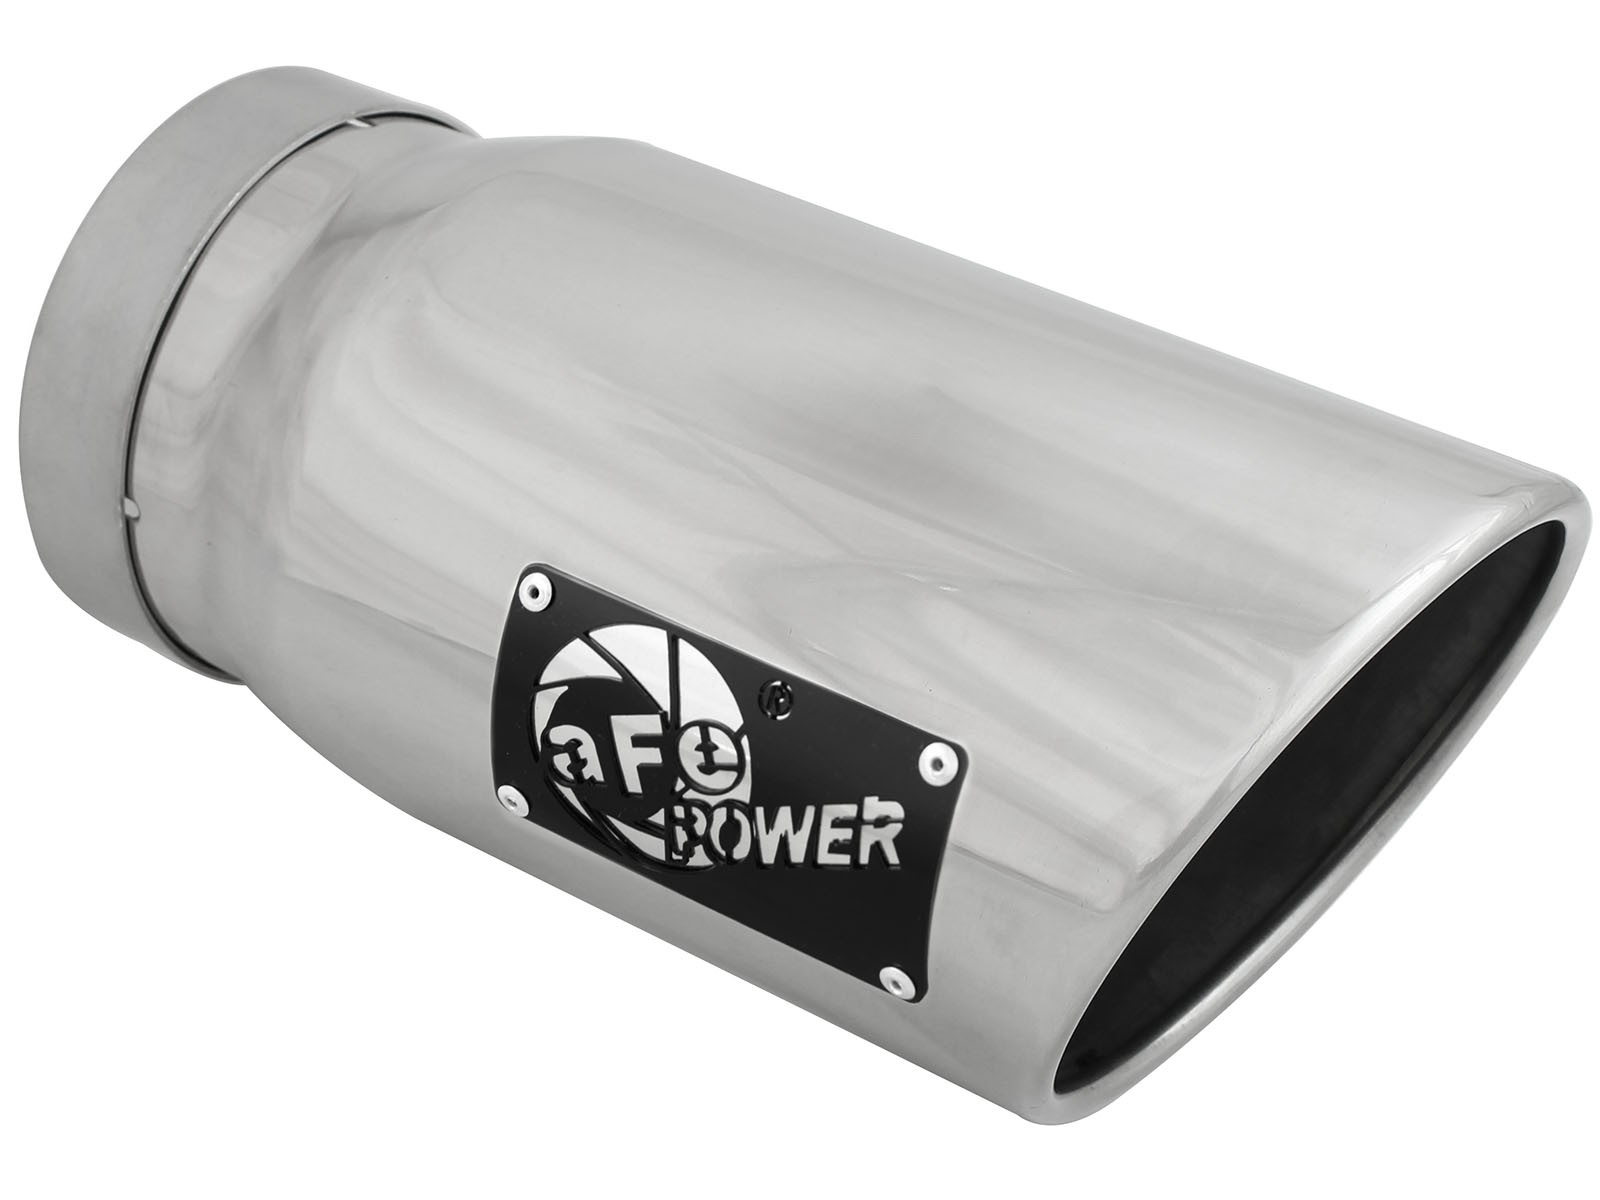 "aFe POWER 49T50601-P12 MACH Force-Xp 5"" 304 Stainless Steel Exhaust Tip"